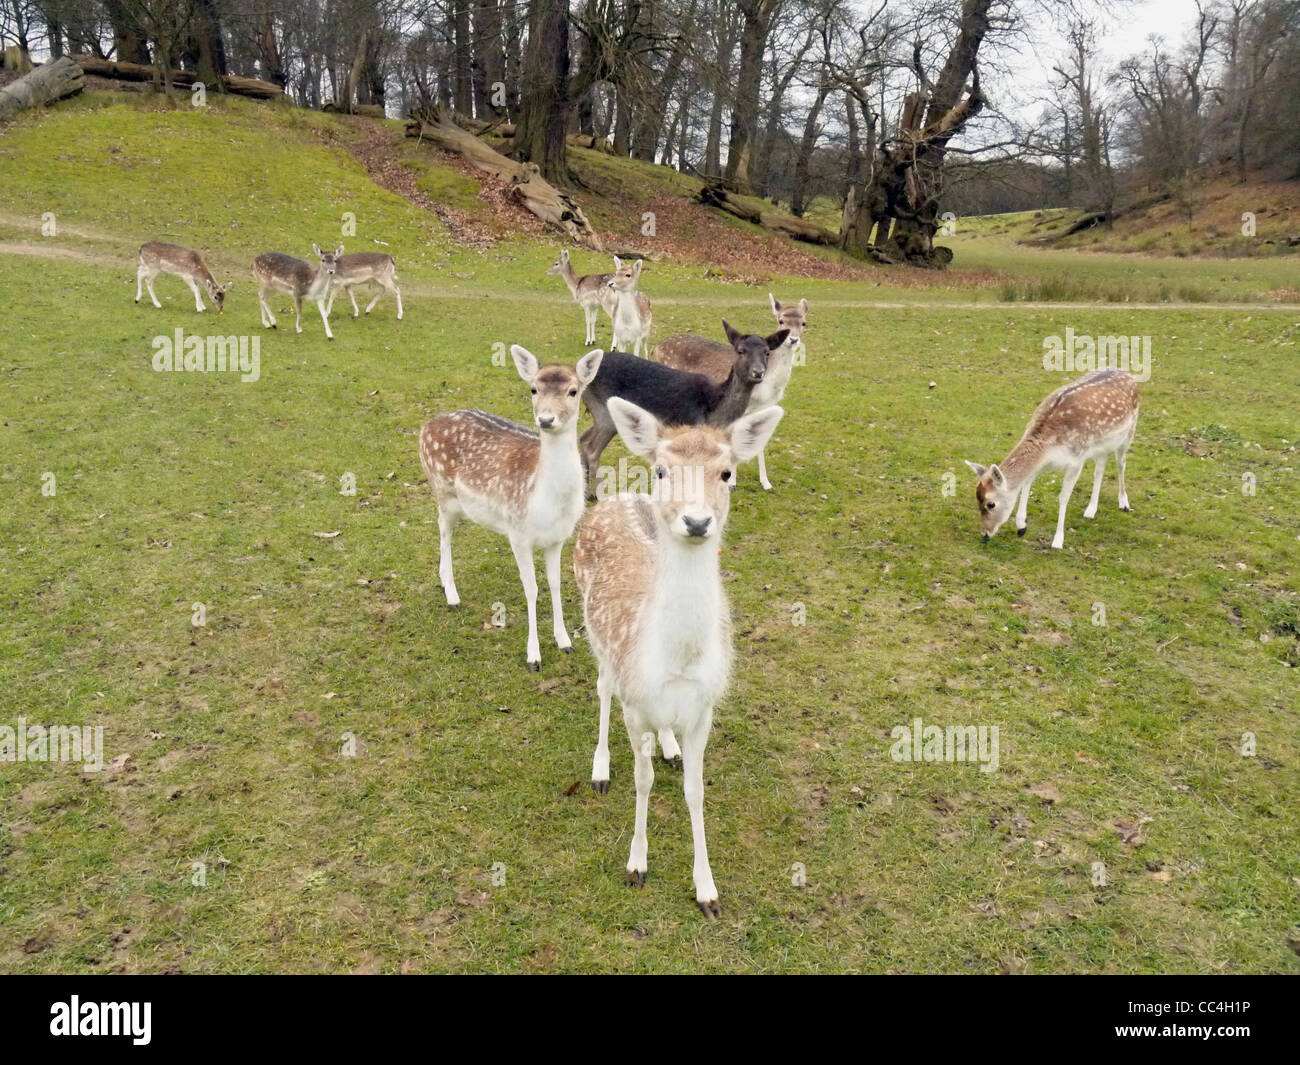 Image of lots of tame deer in Knole Park Sevenoaks - Stock Image